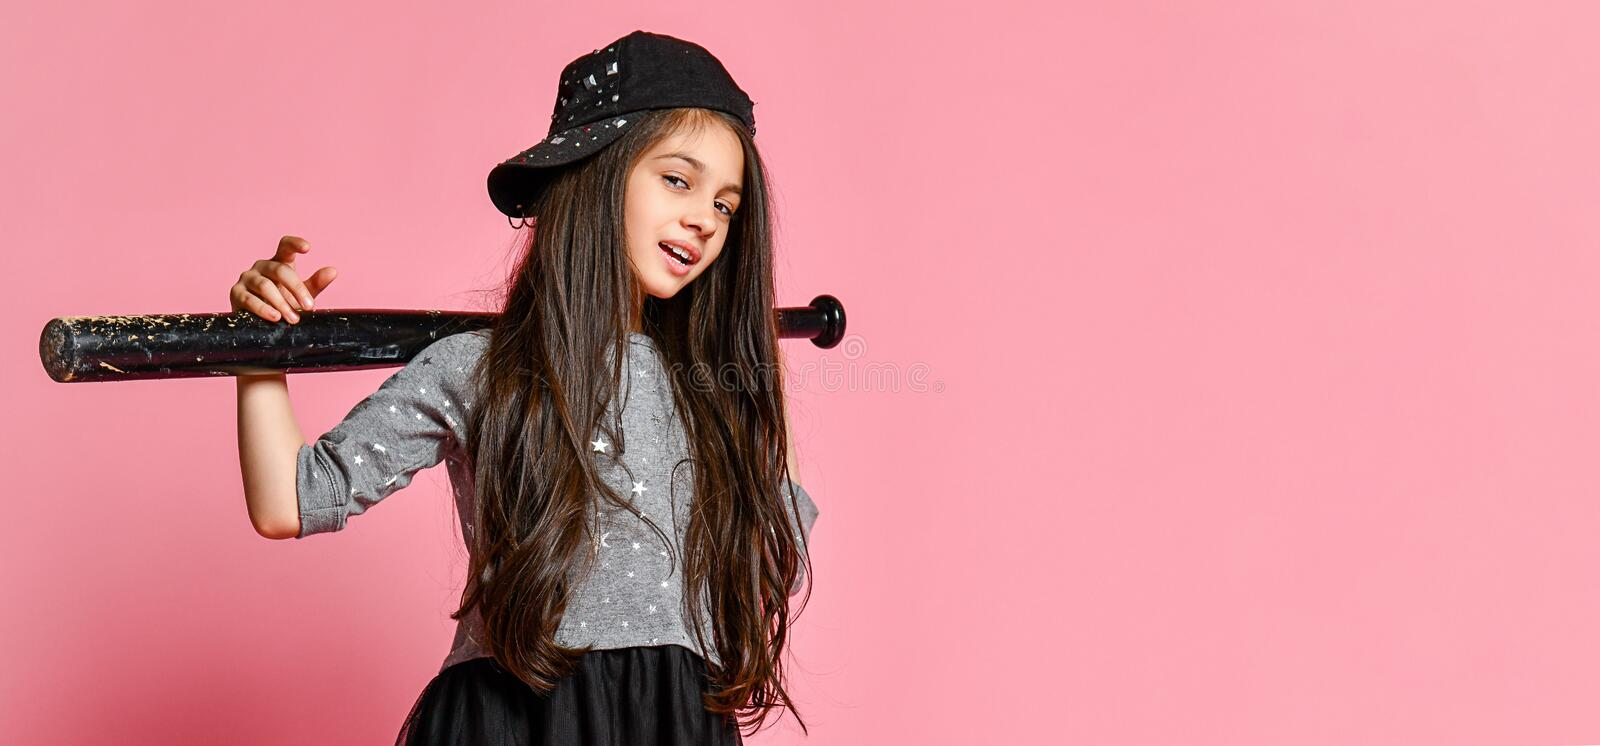 Young bright american girl with baseball bat. Girl in a dark dress, with a mesh skirt and sneakers, wearing a cap, holding a baseball bat on a pink royalty free stock photos